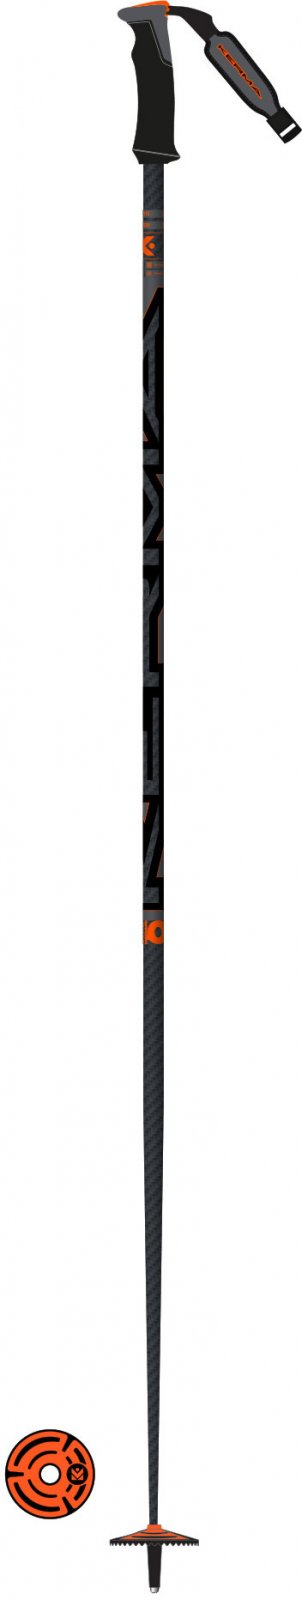 Kerma Speedzone Carbon 40 Safety Ski Poles 2020